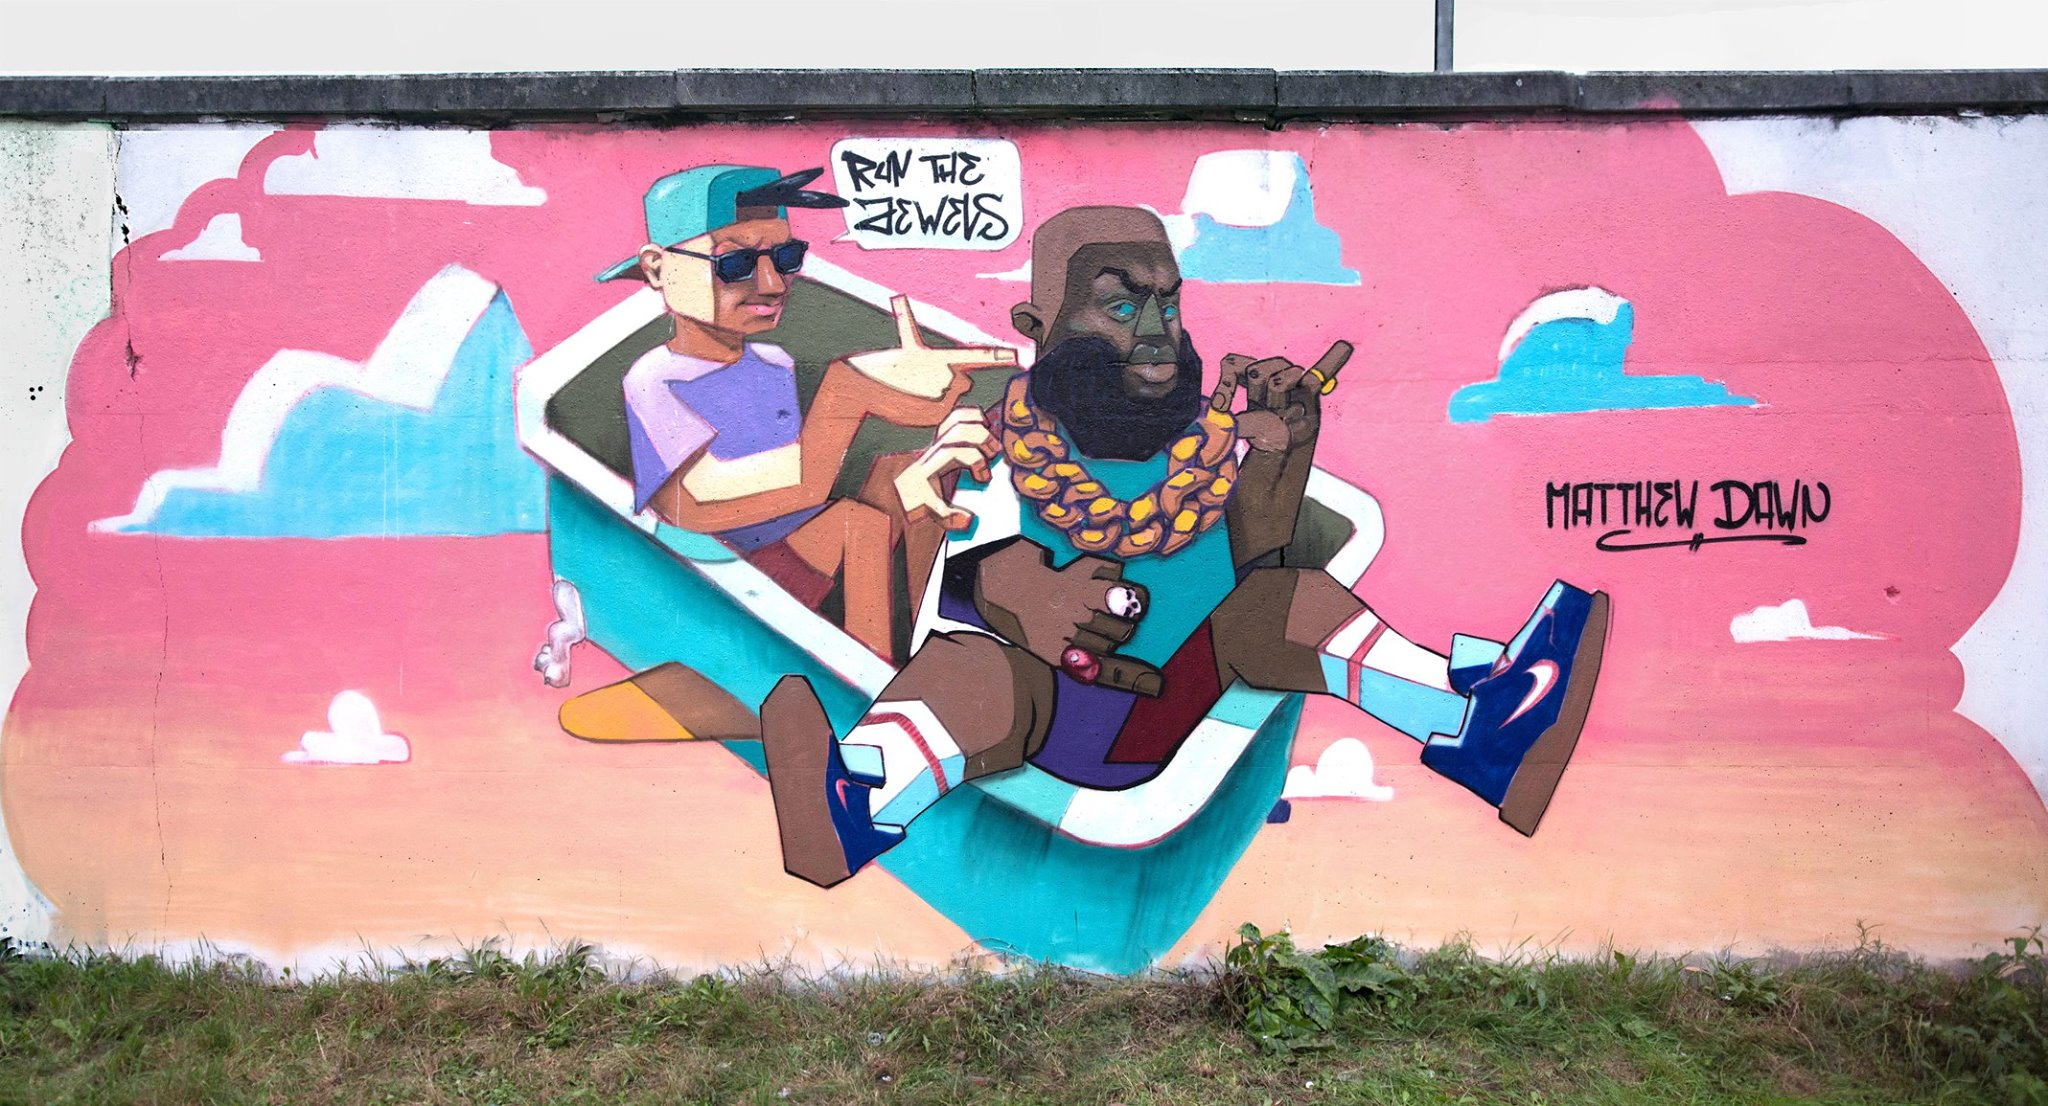 Matthew Dawn Run The Jewels Graffiti Sint Niklaas Belgium - Street Art Graffiti Belgium